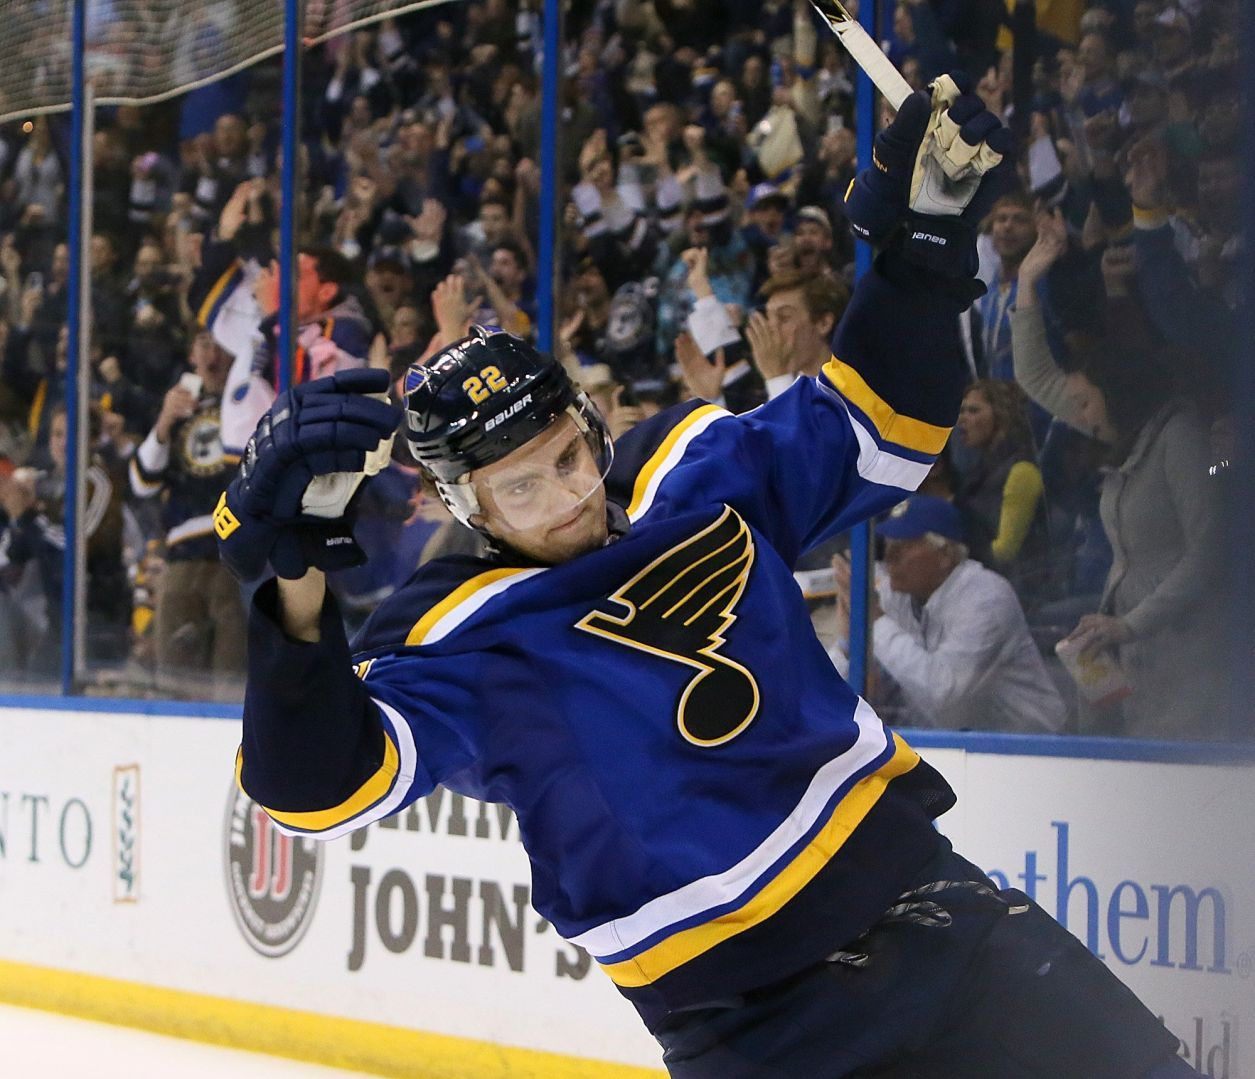 Blues hope to have Shattenkirk back Saturday